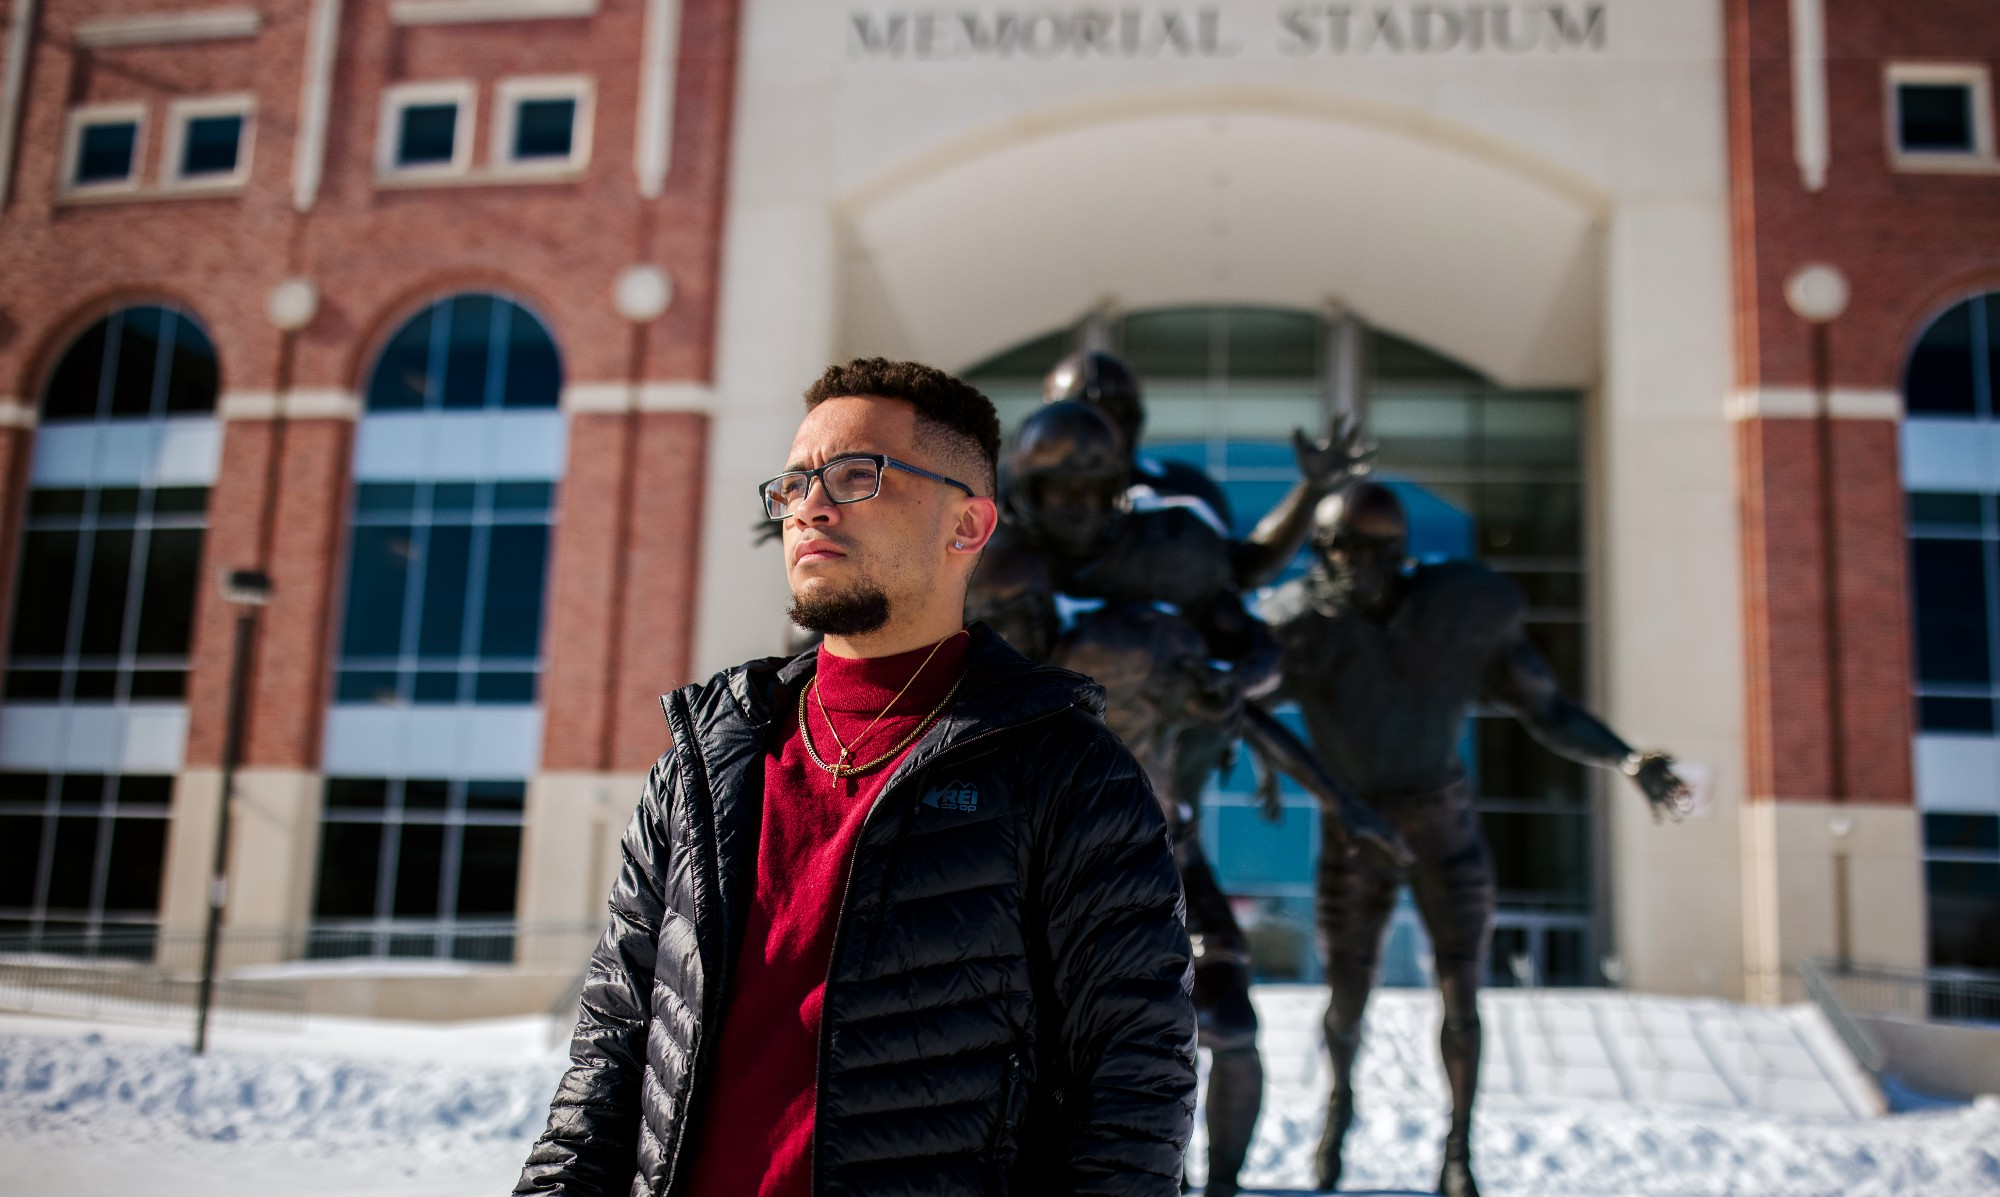 Drake Keeler stands in front of Memorial Stadium looking off to the left